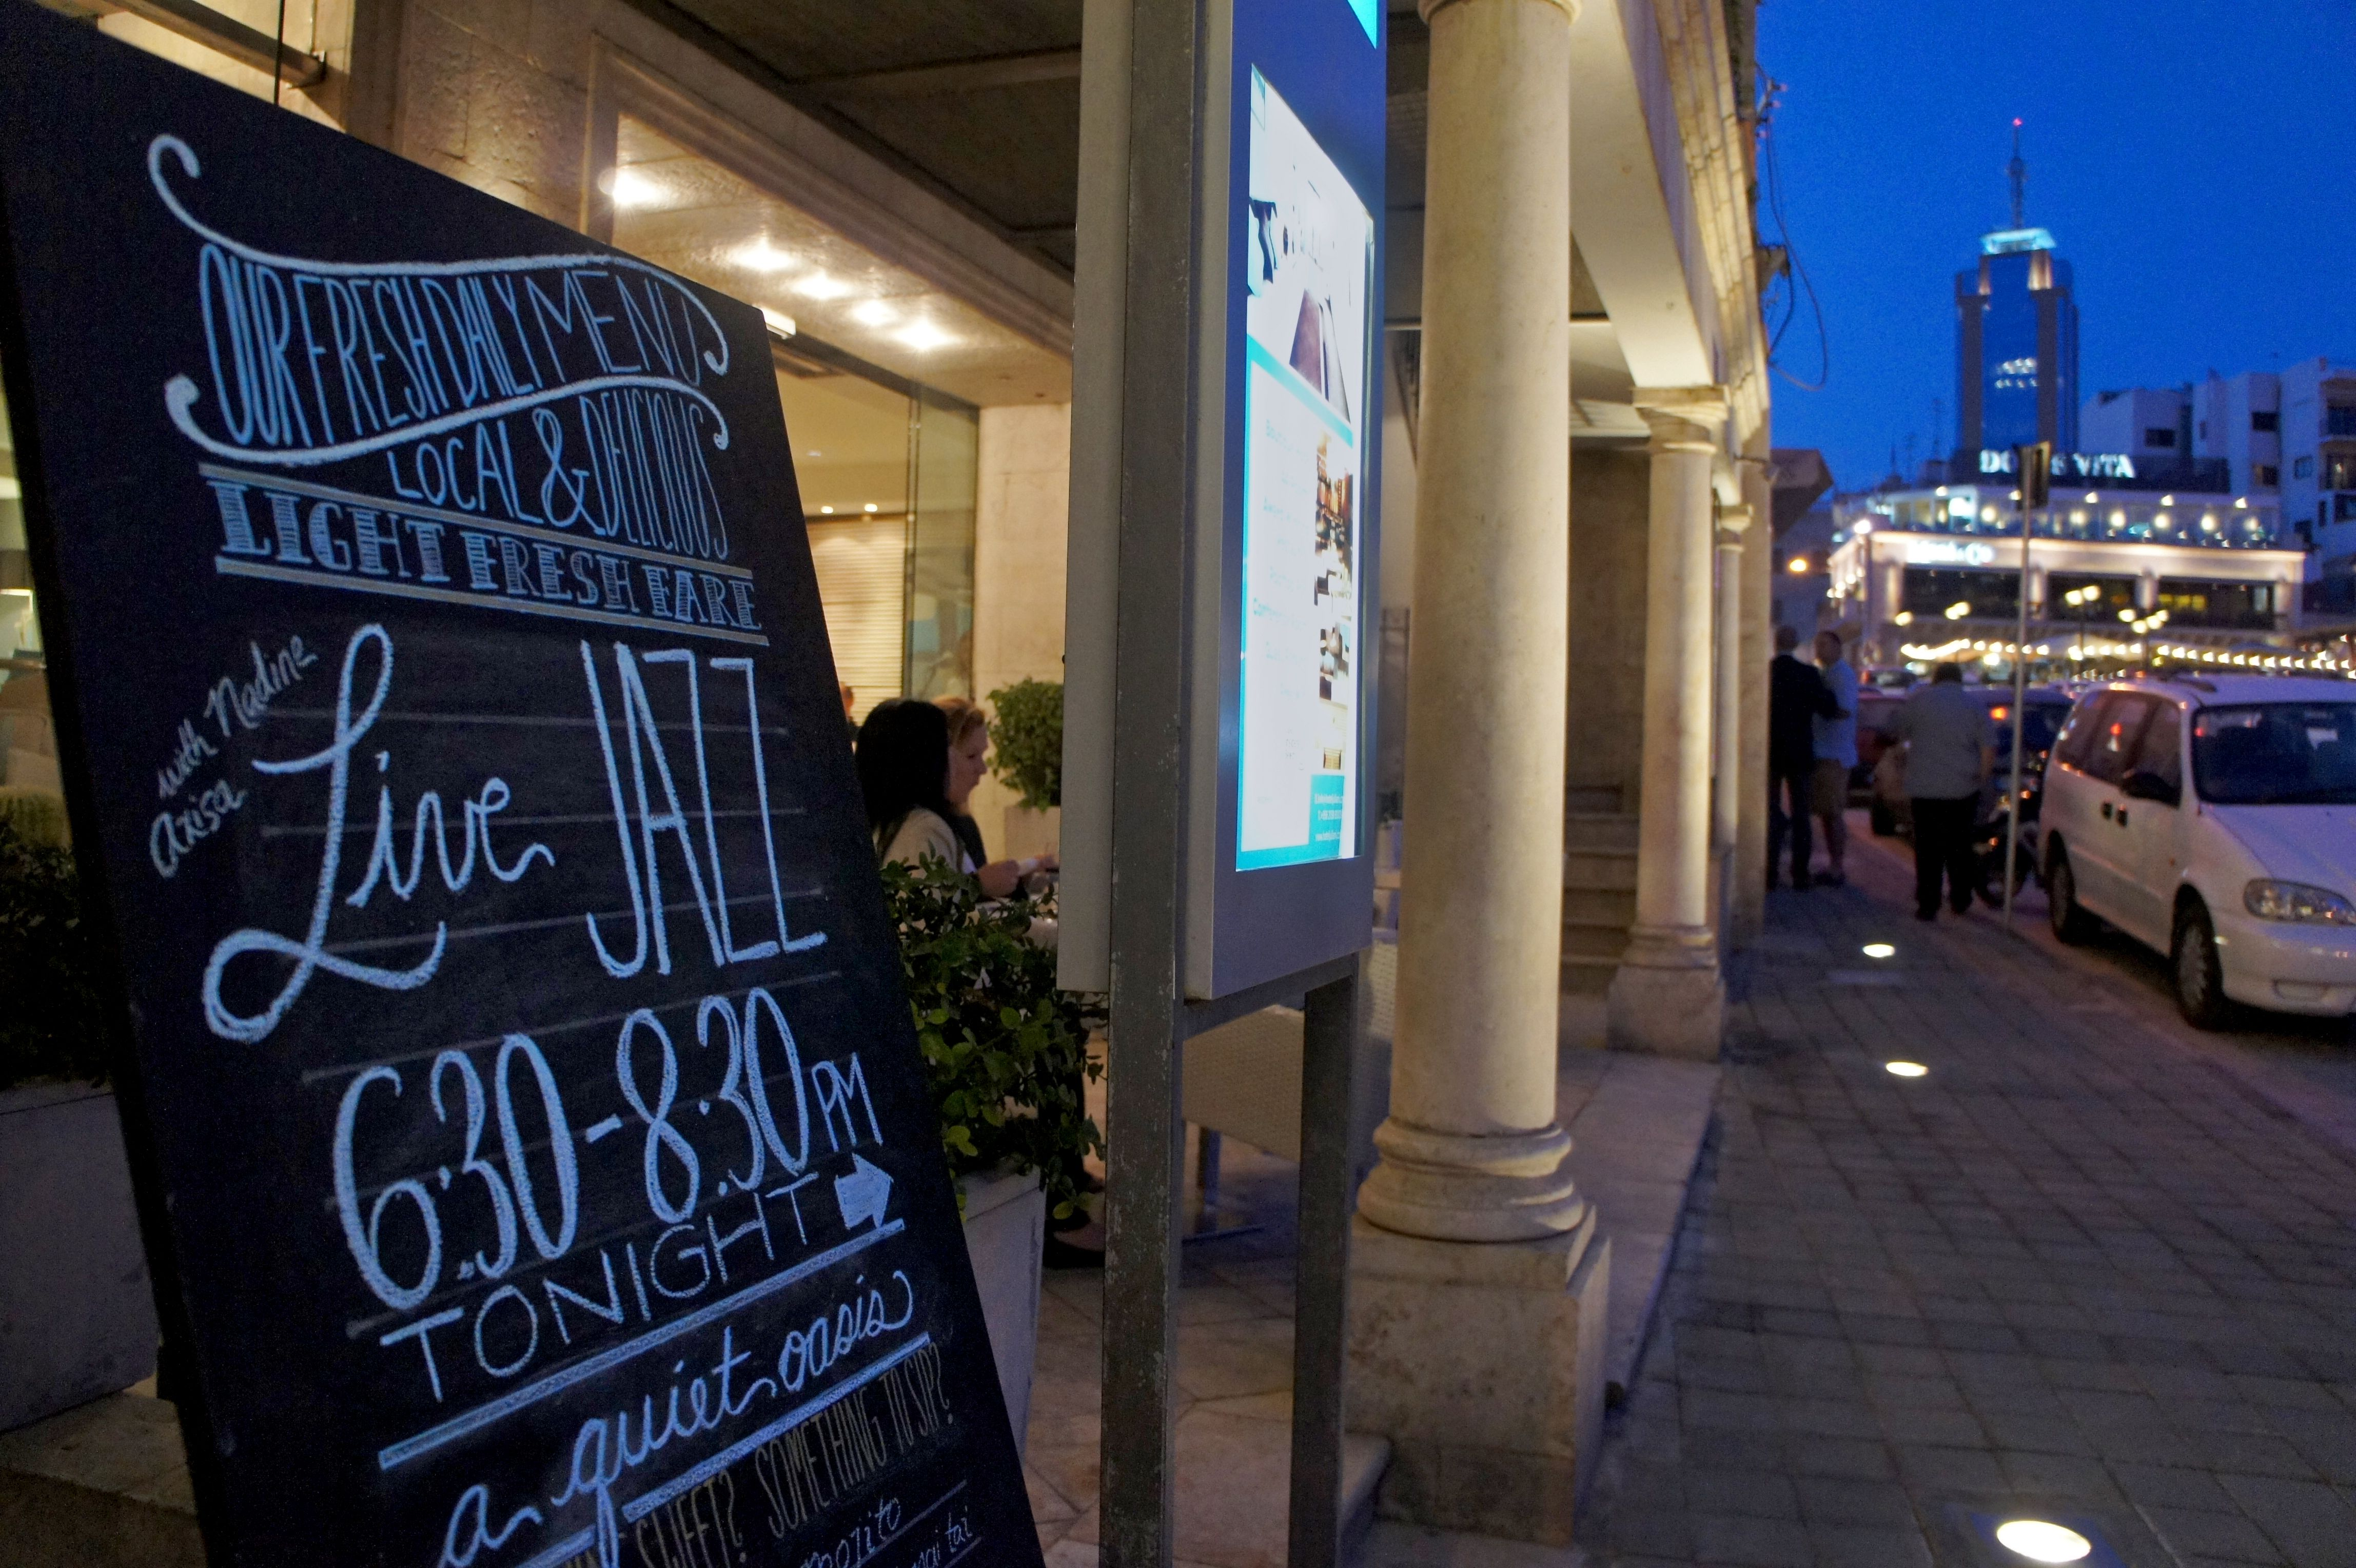 Live jazz and aperitivo at our lobby cafe, offering a taste of contemporary Maltese culture to our hotel guests!